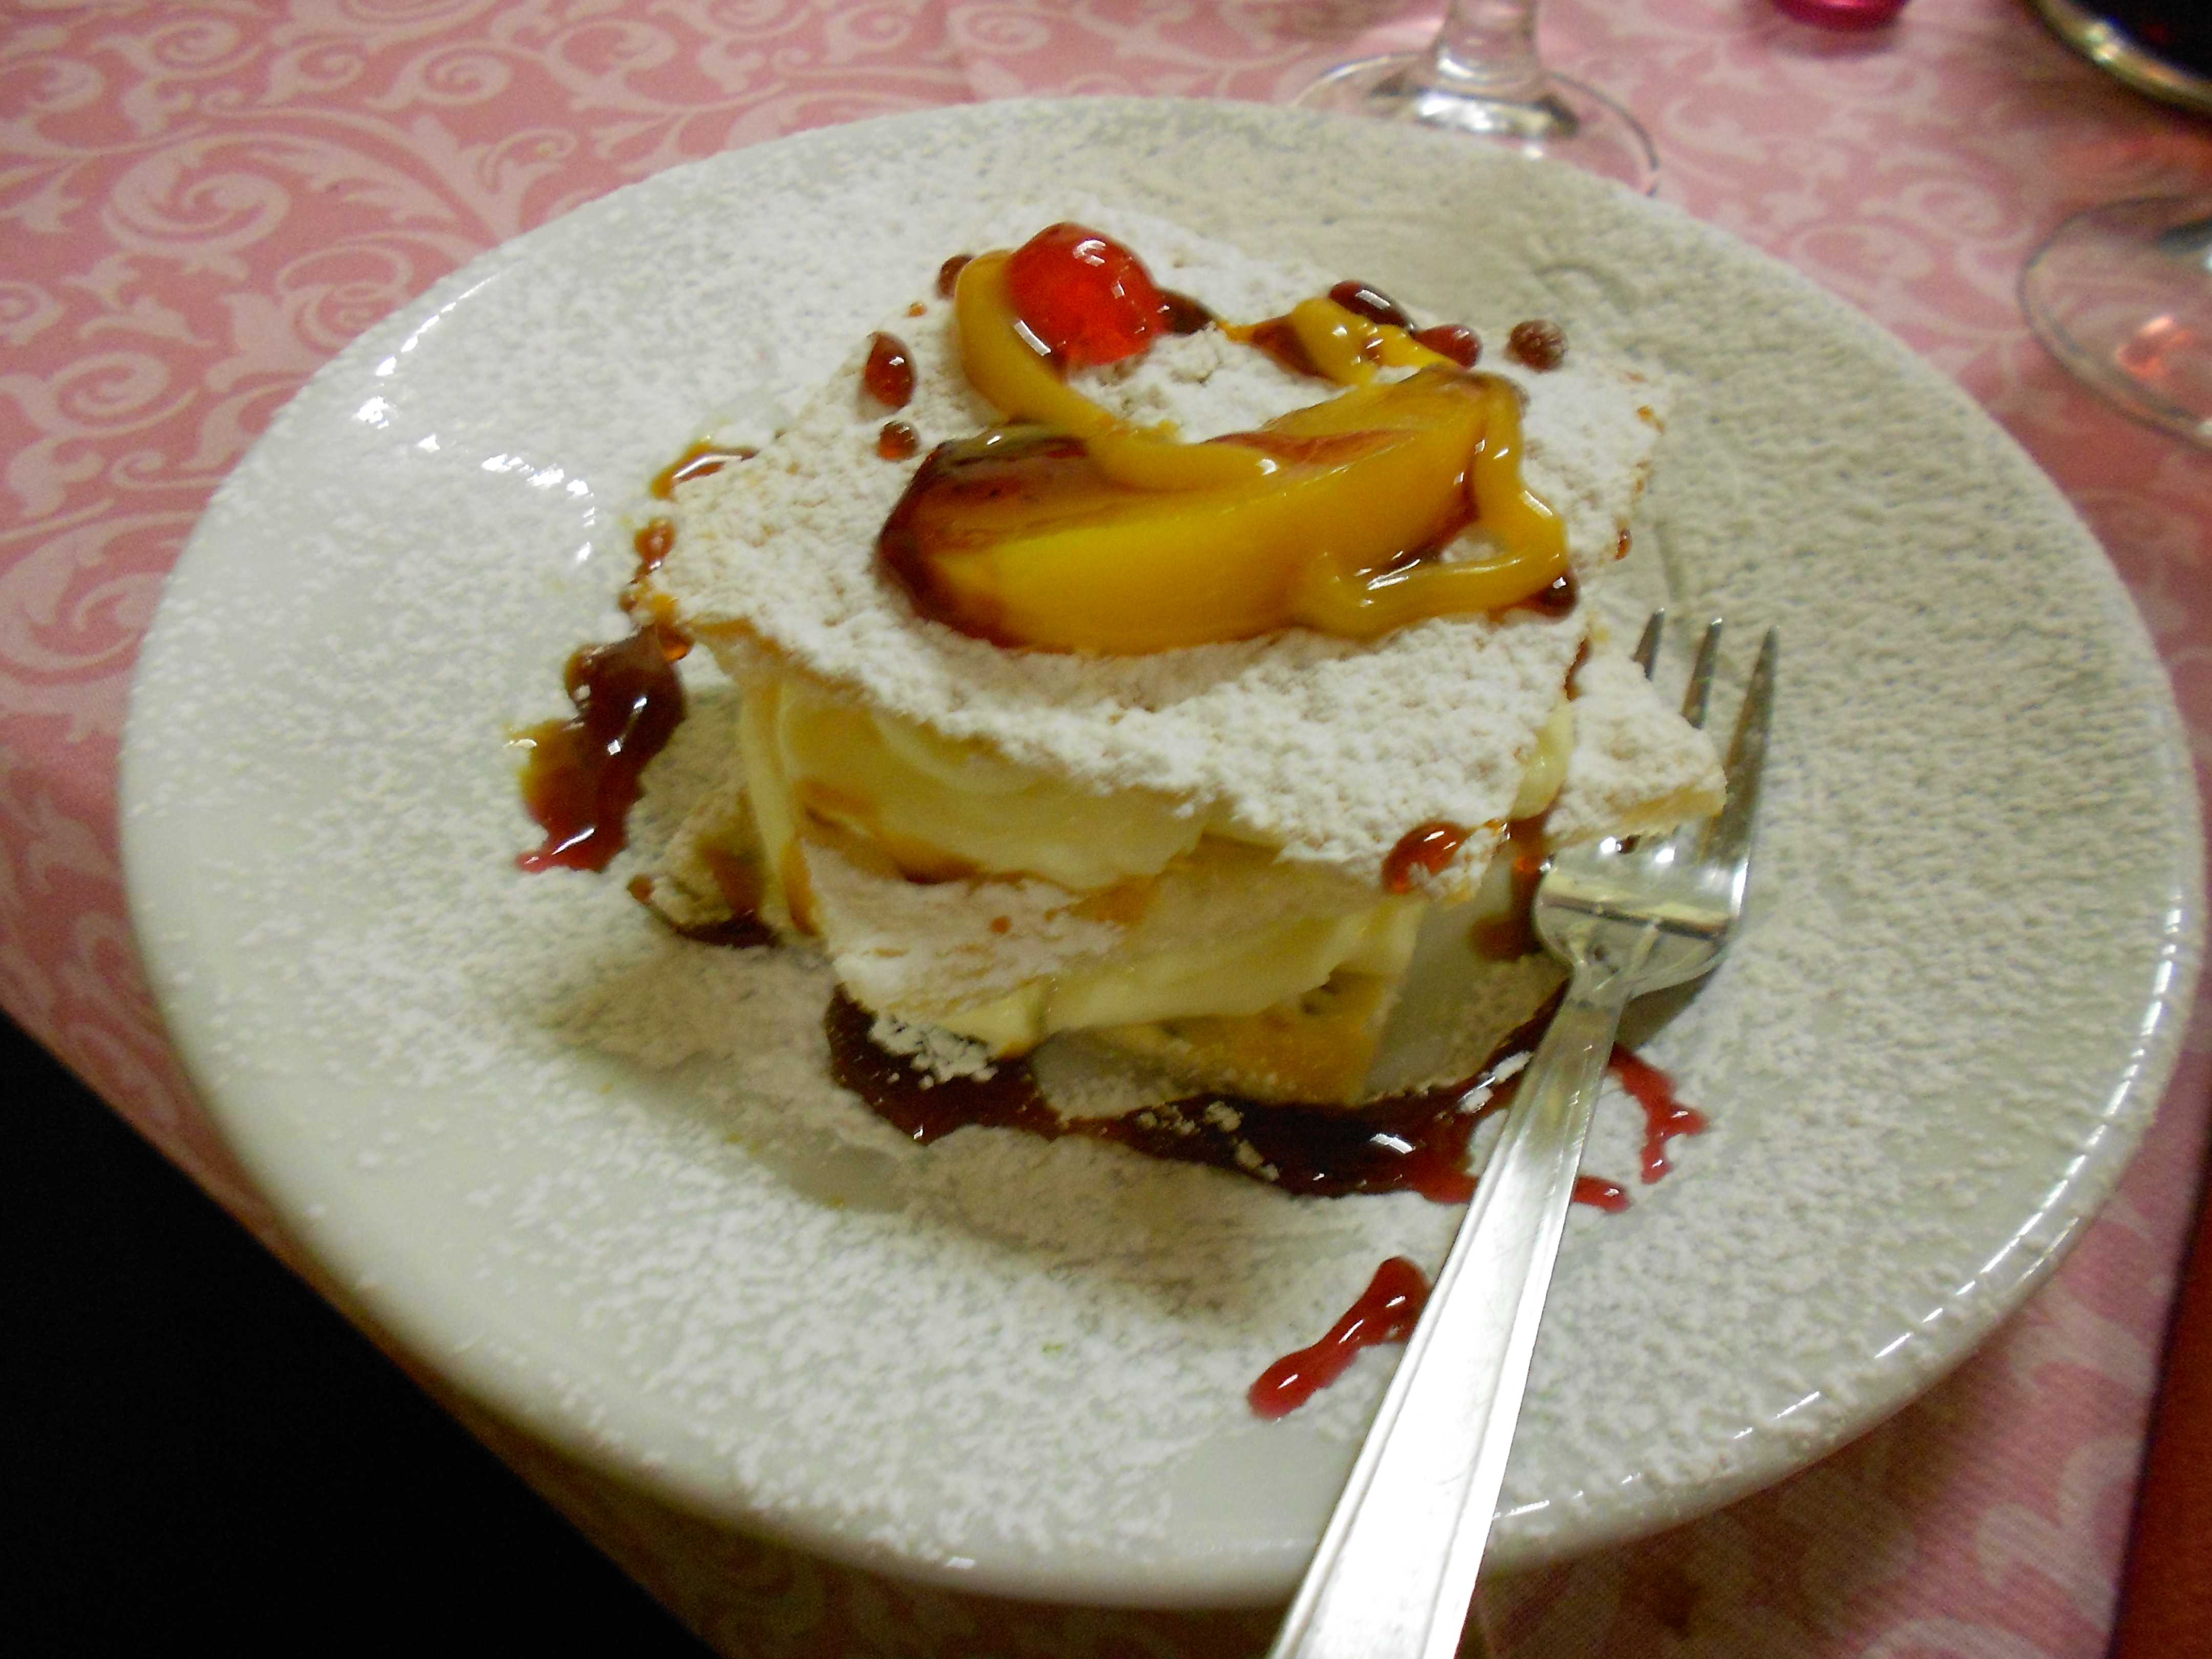 A delicious dessert named Acone style